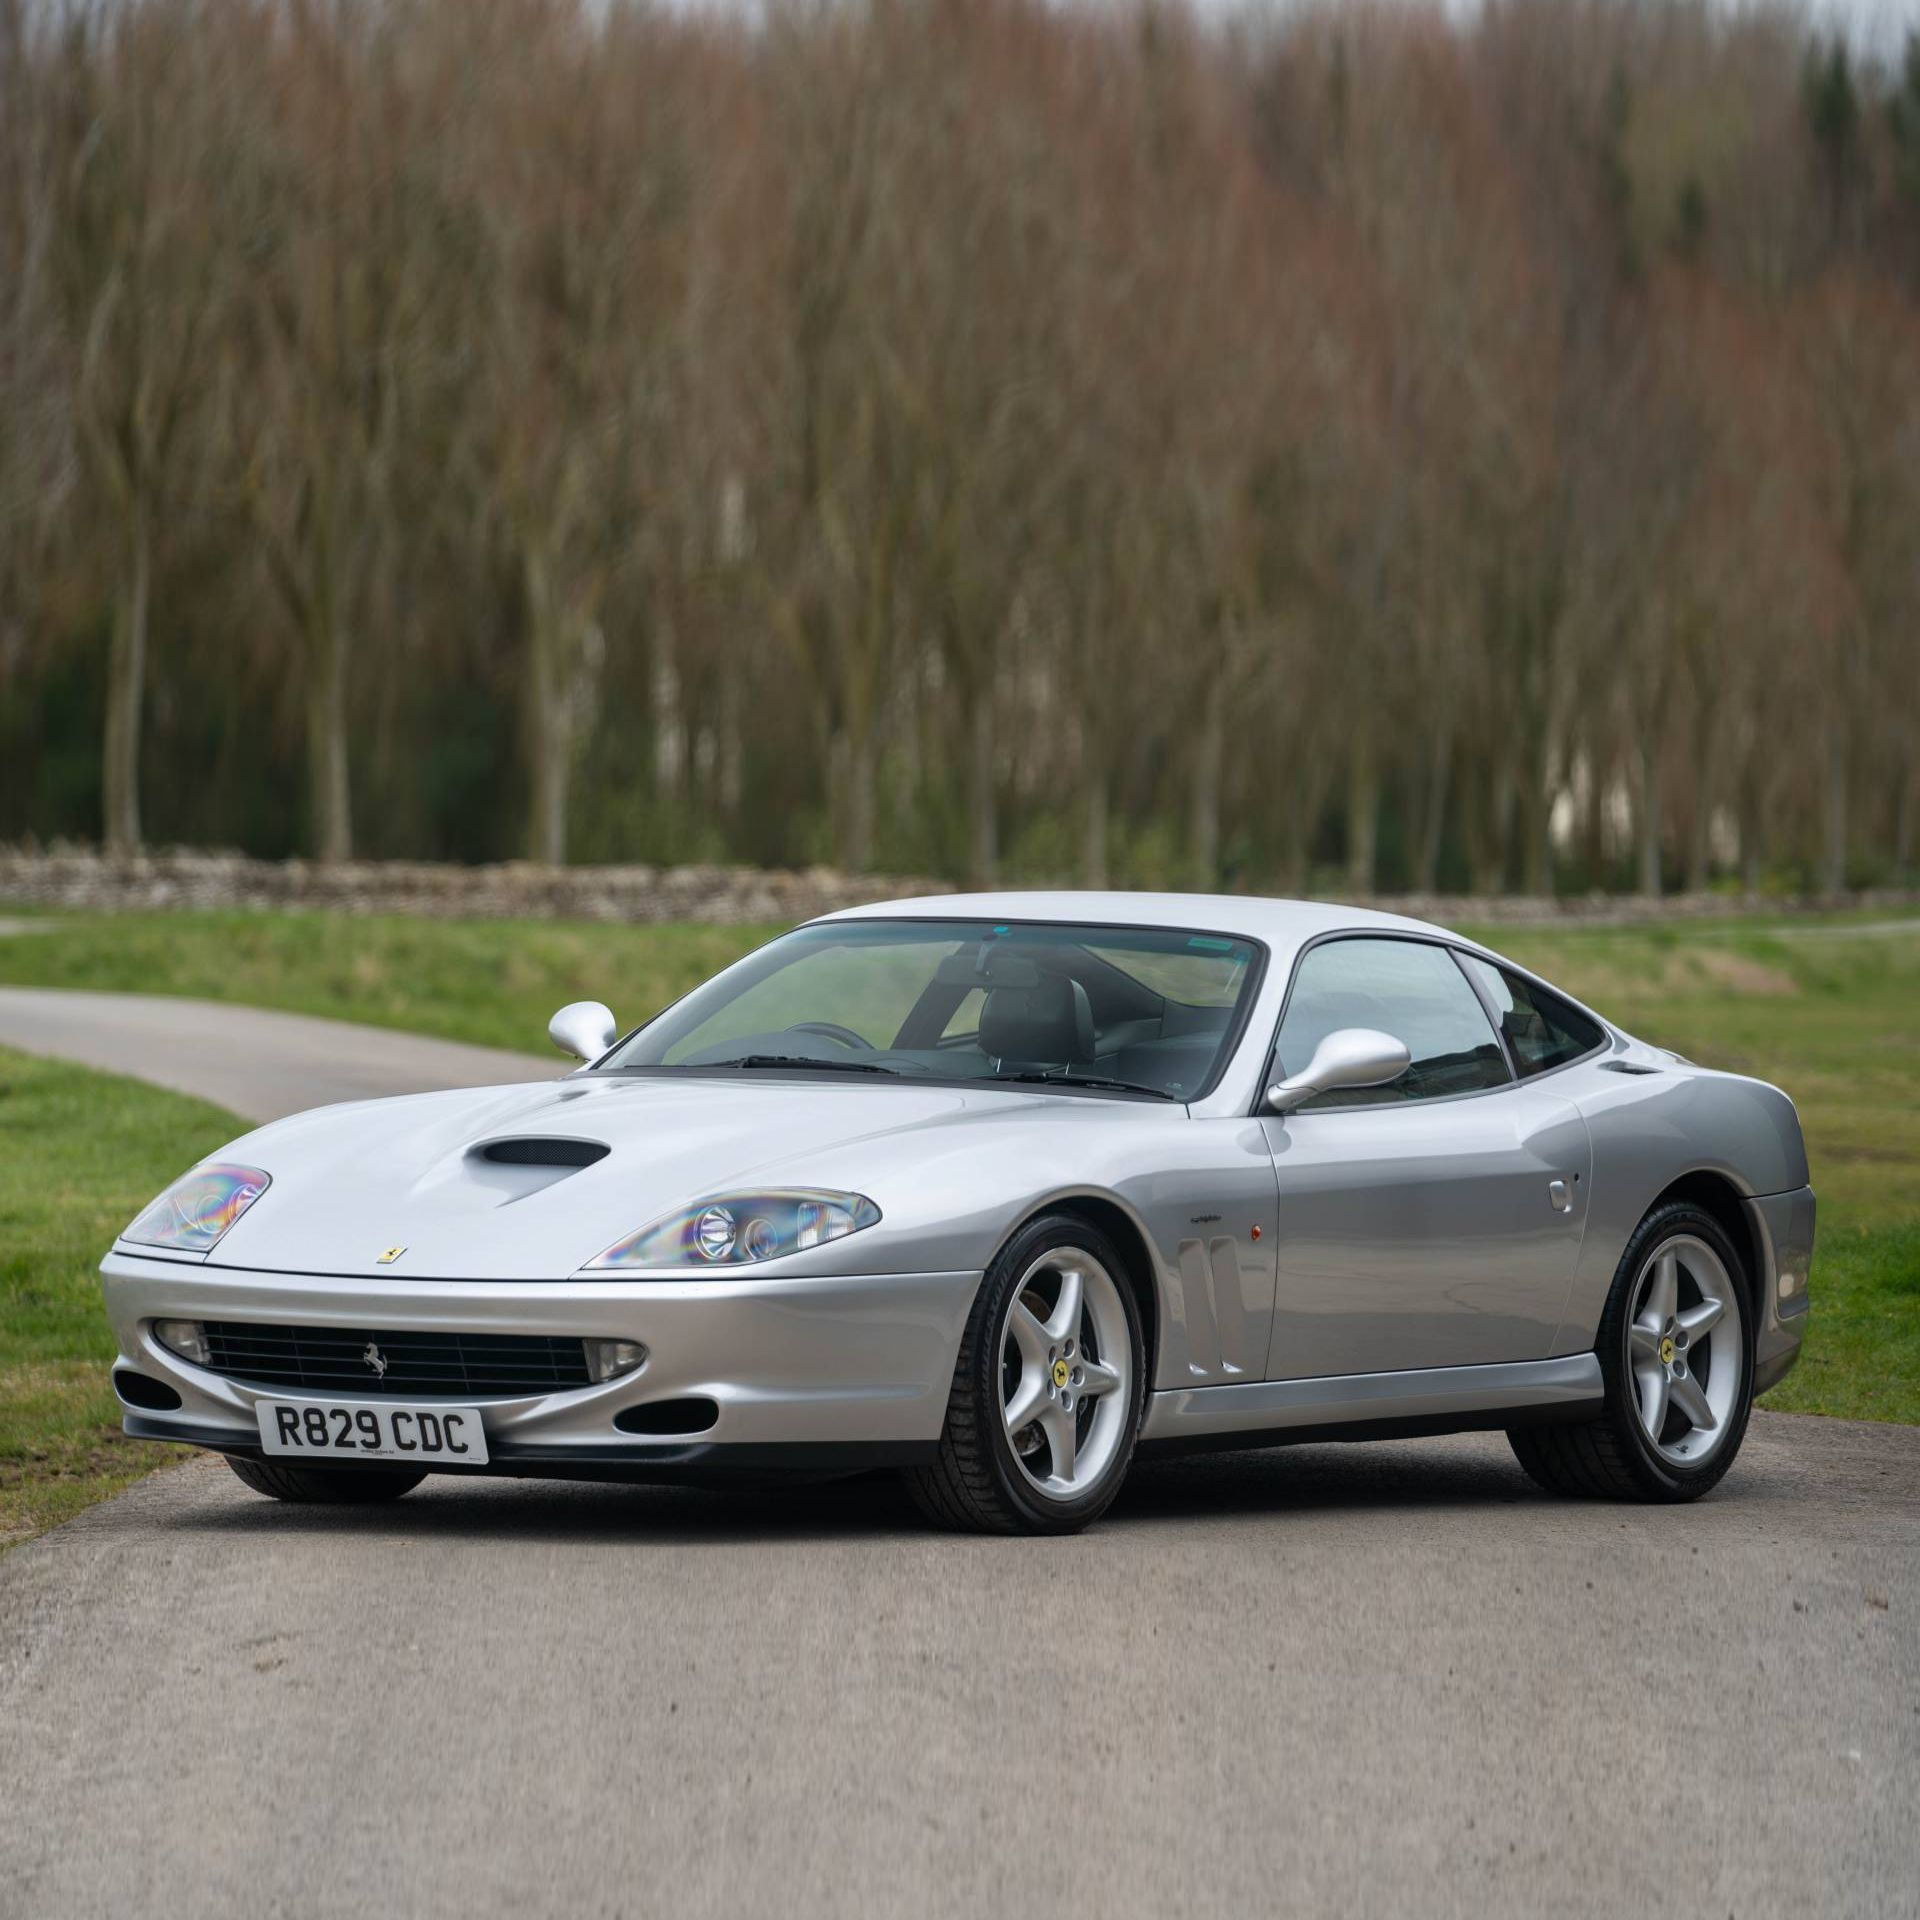 A Modern Classic In Excellent Condition This Stunning 1998 Ferrari 550 Maranello Comes Equipped With A 485hp Producing 5 5 Li Classic Trader Maranello Ferrari